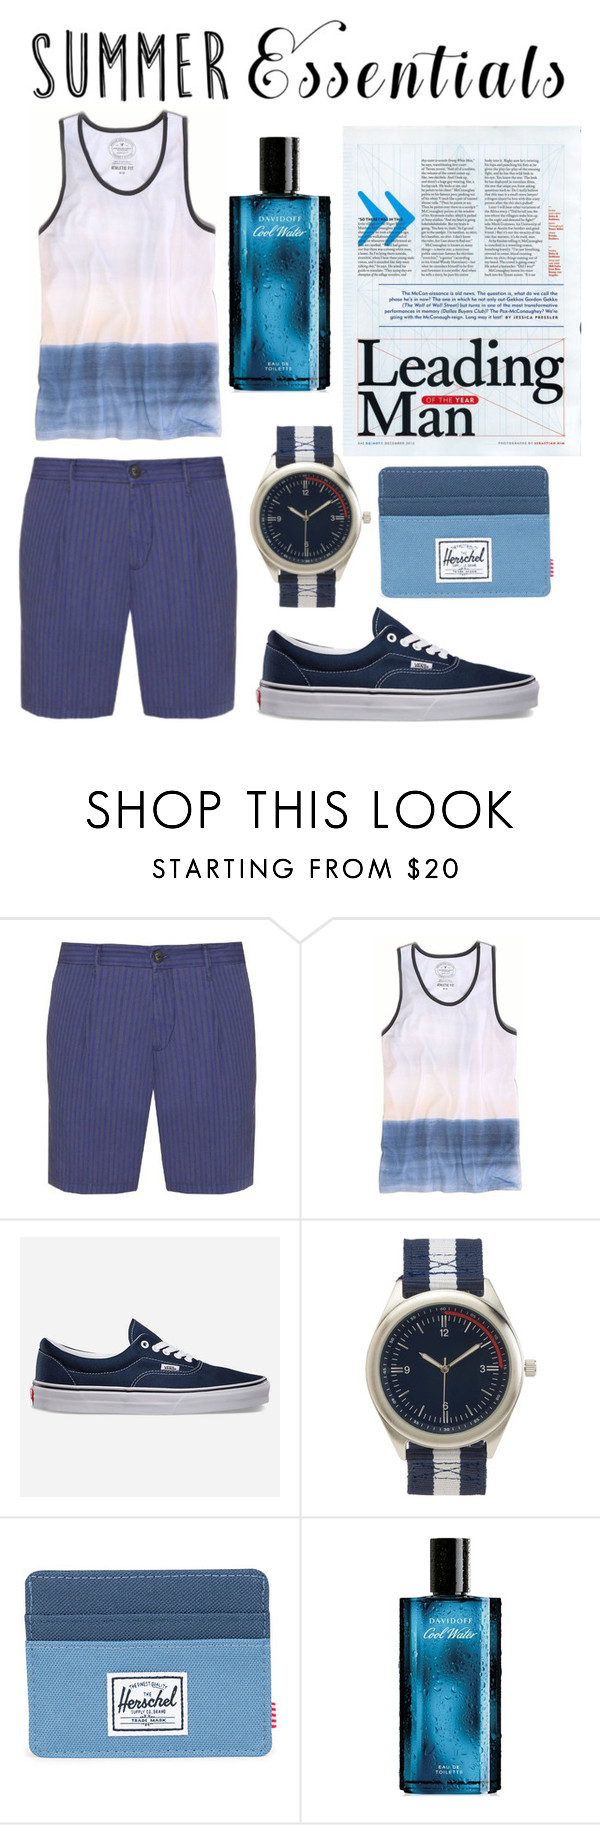 """Untitled #302"" by rockabillygypsy ❤ liked on Polyvore featuring J.W. Brine, American Eagle Outfitters, Vans, Aéropostale, Herschel Supply Co., Davidoff, men's fashion, menswear and summermenswearessentials"